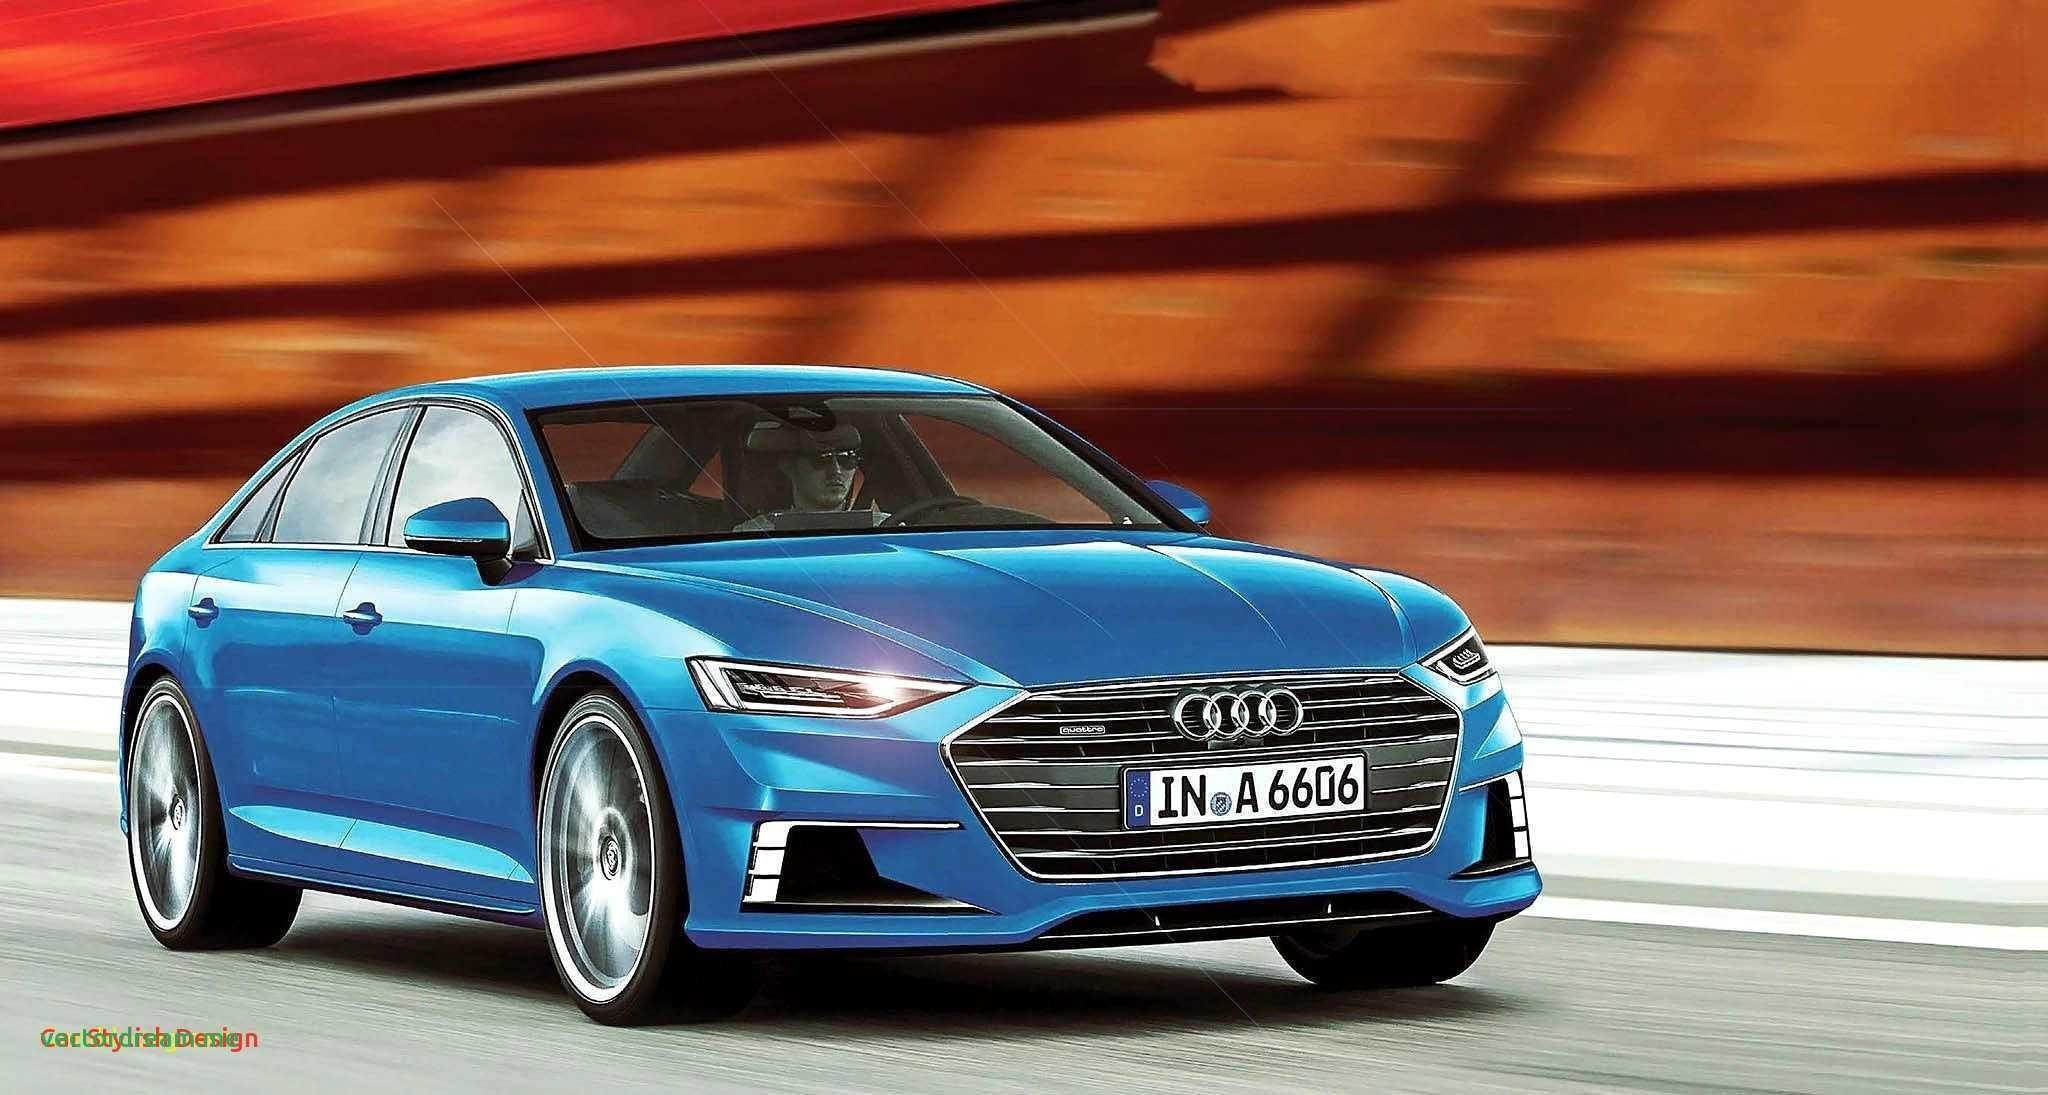 Latest Audi Car Hd Images Free Classycloud Co Free Download